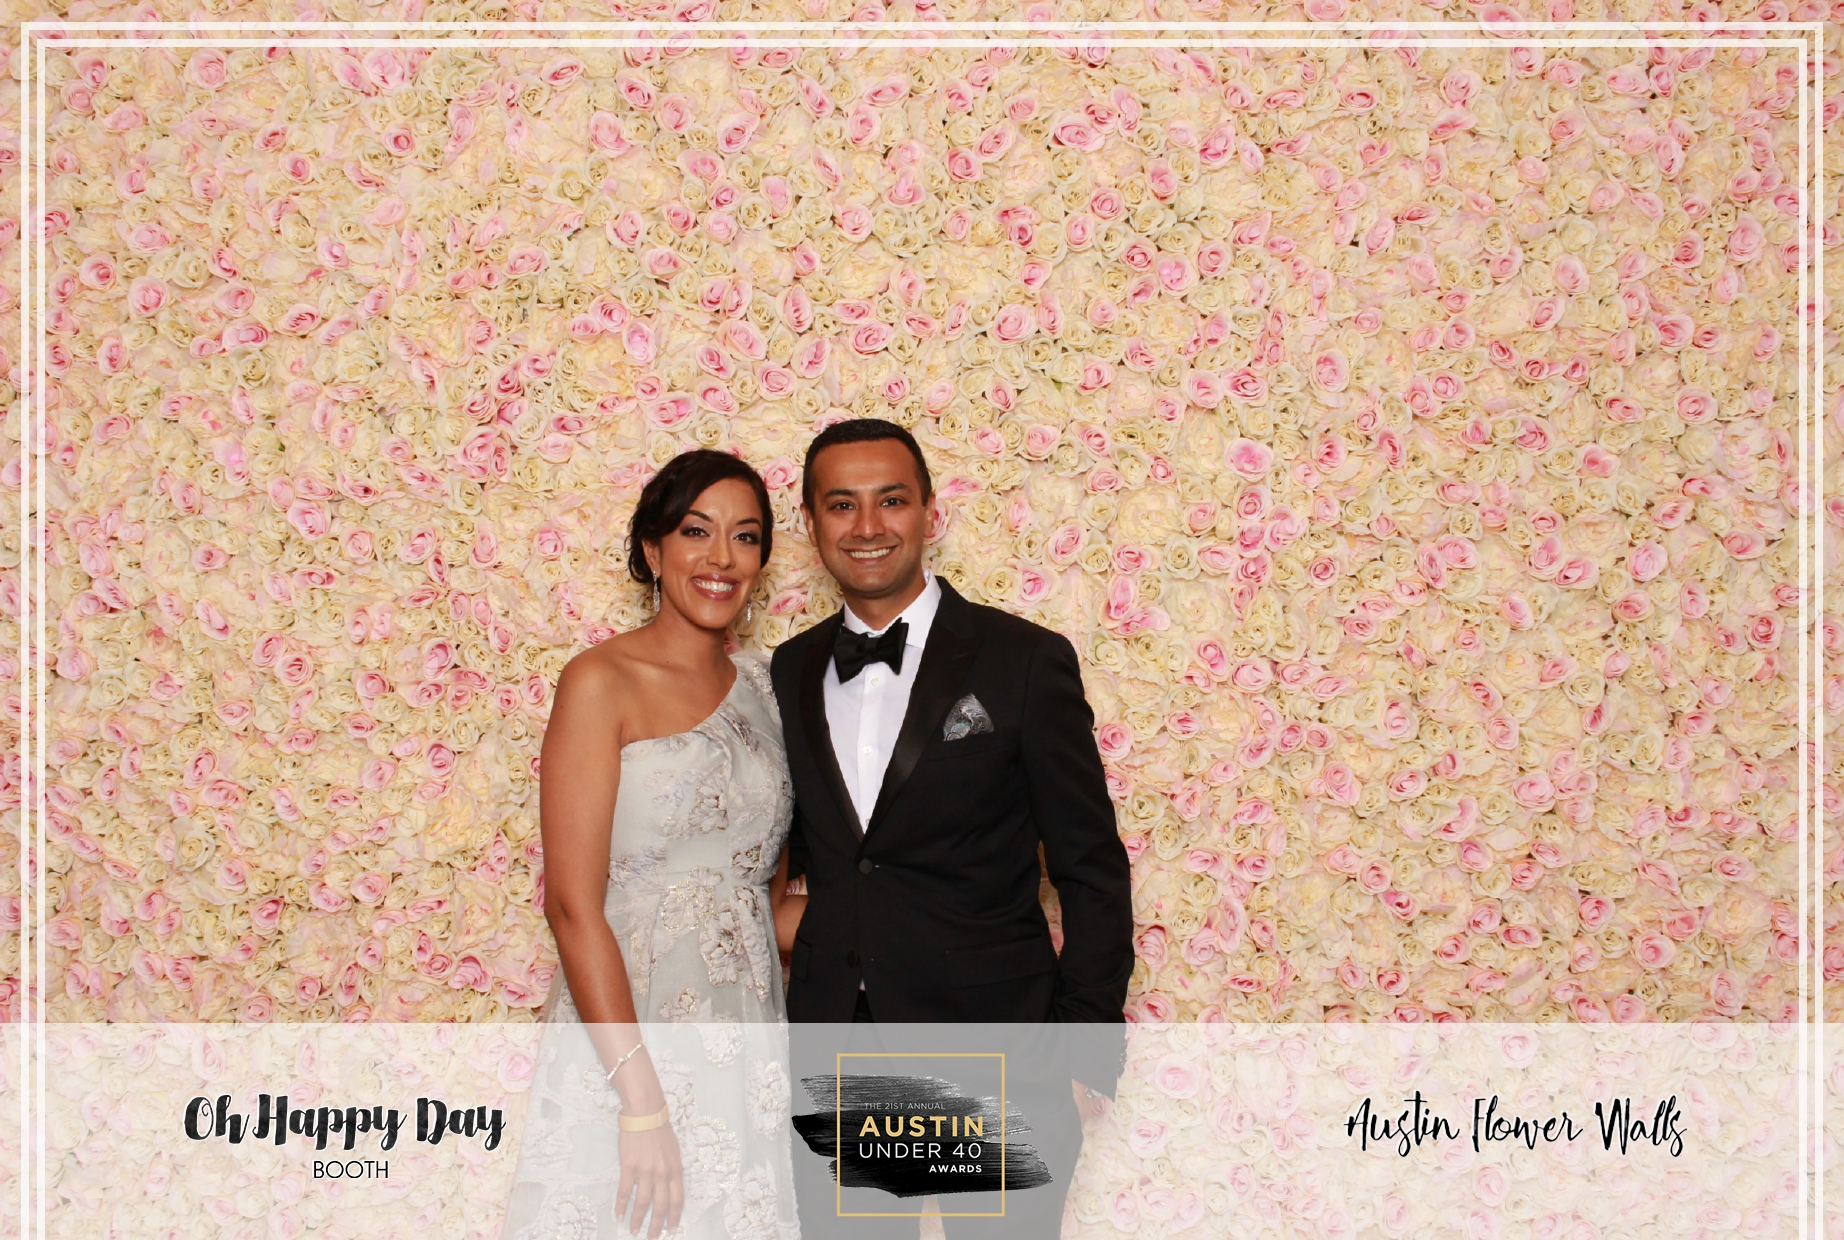 Oh Happy Day Booth - Austin Under 40-47.jpg